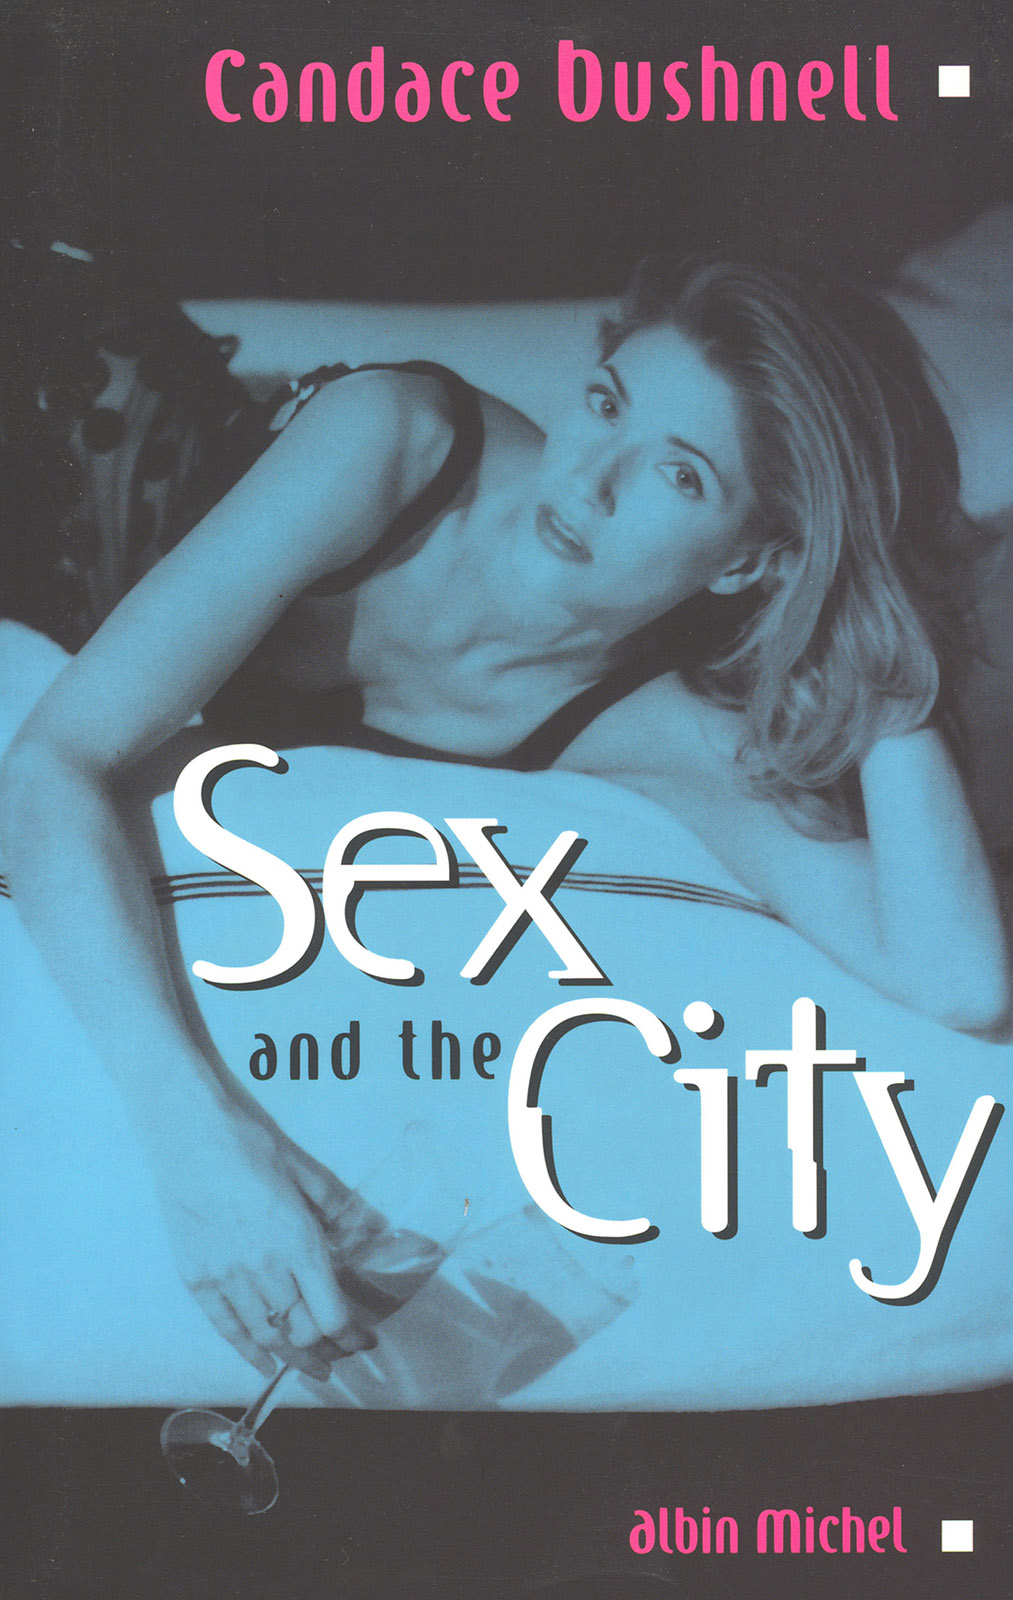 sex-and-the-city-1445397.jpg